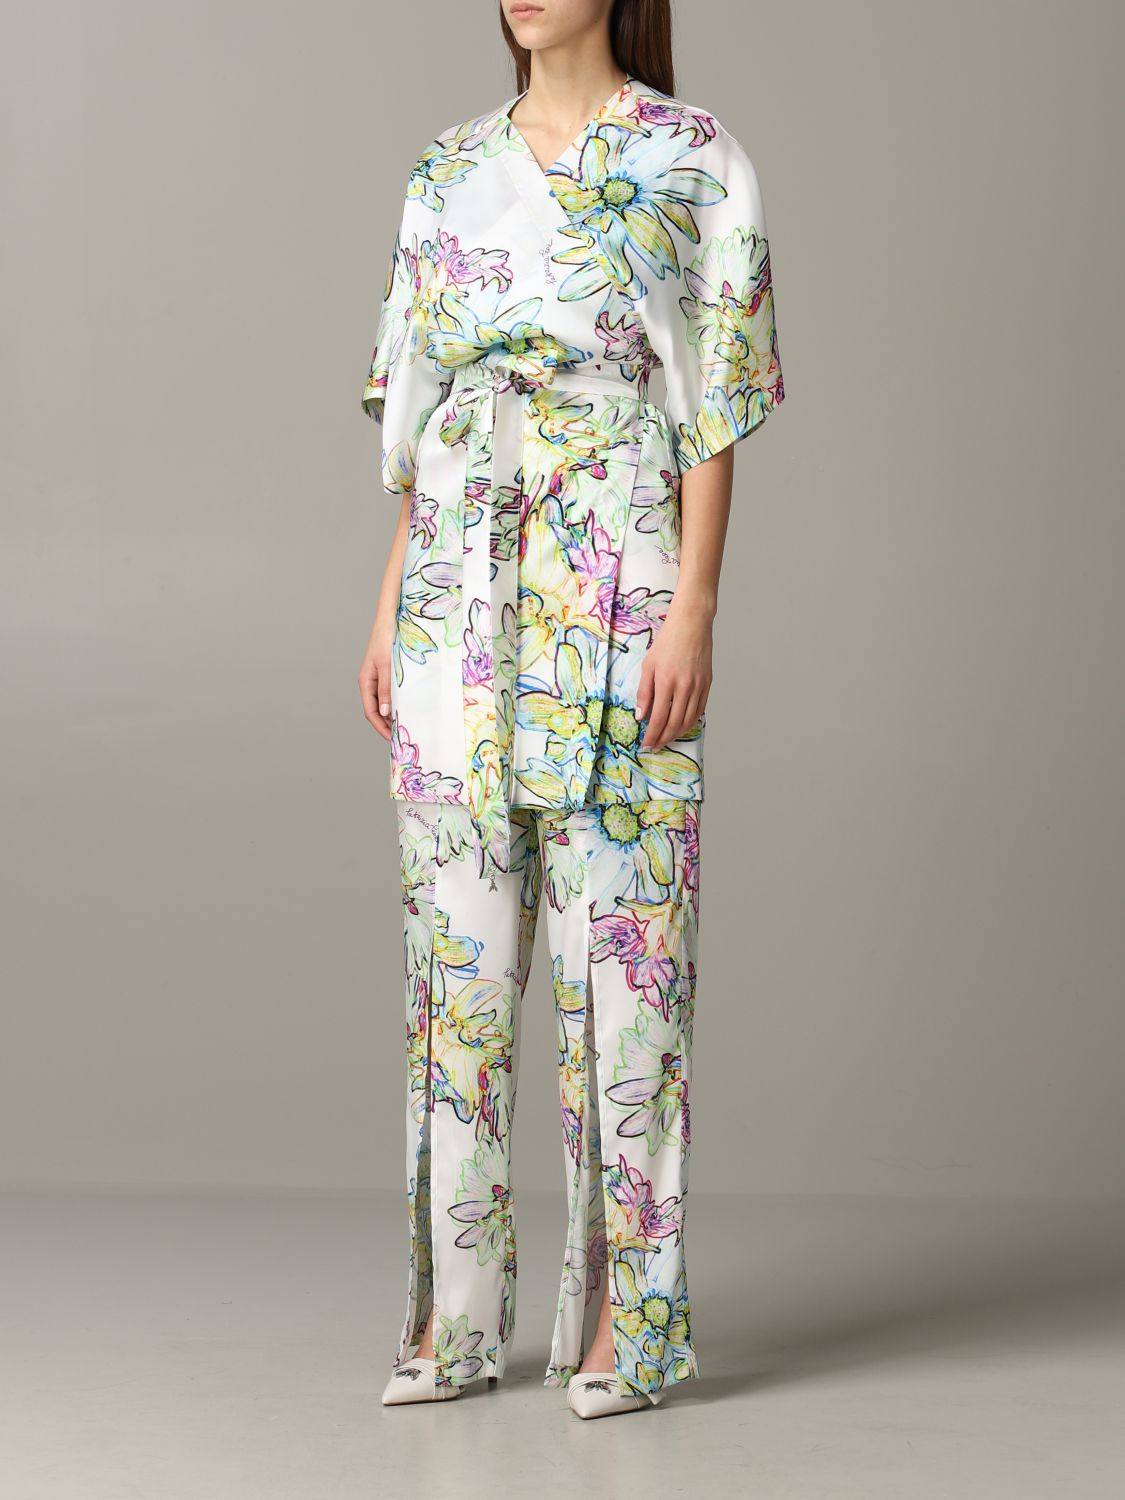 Patrizia Pepe jumpsuit in floral patterned satin white 4